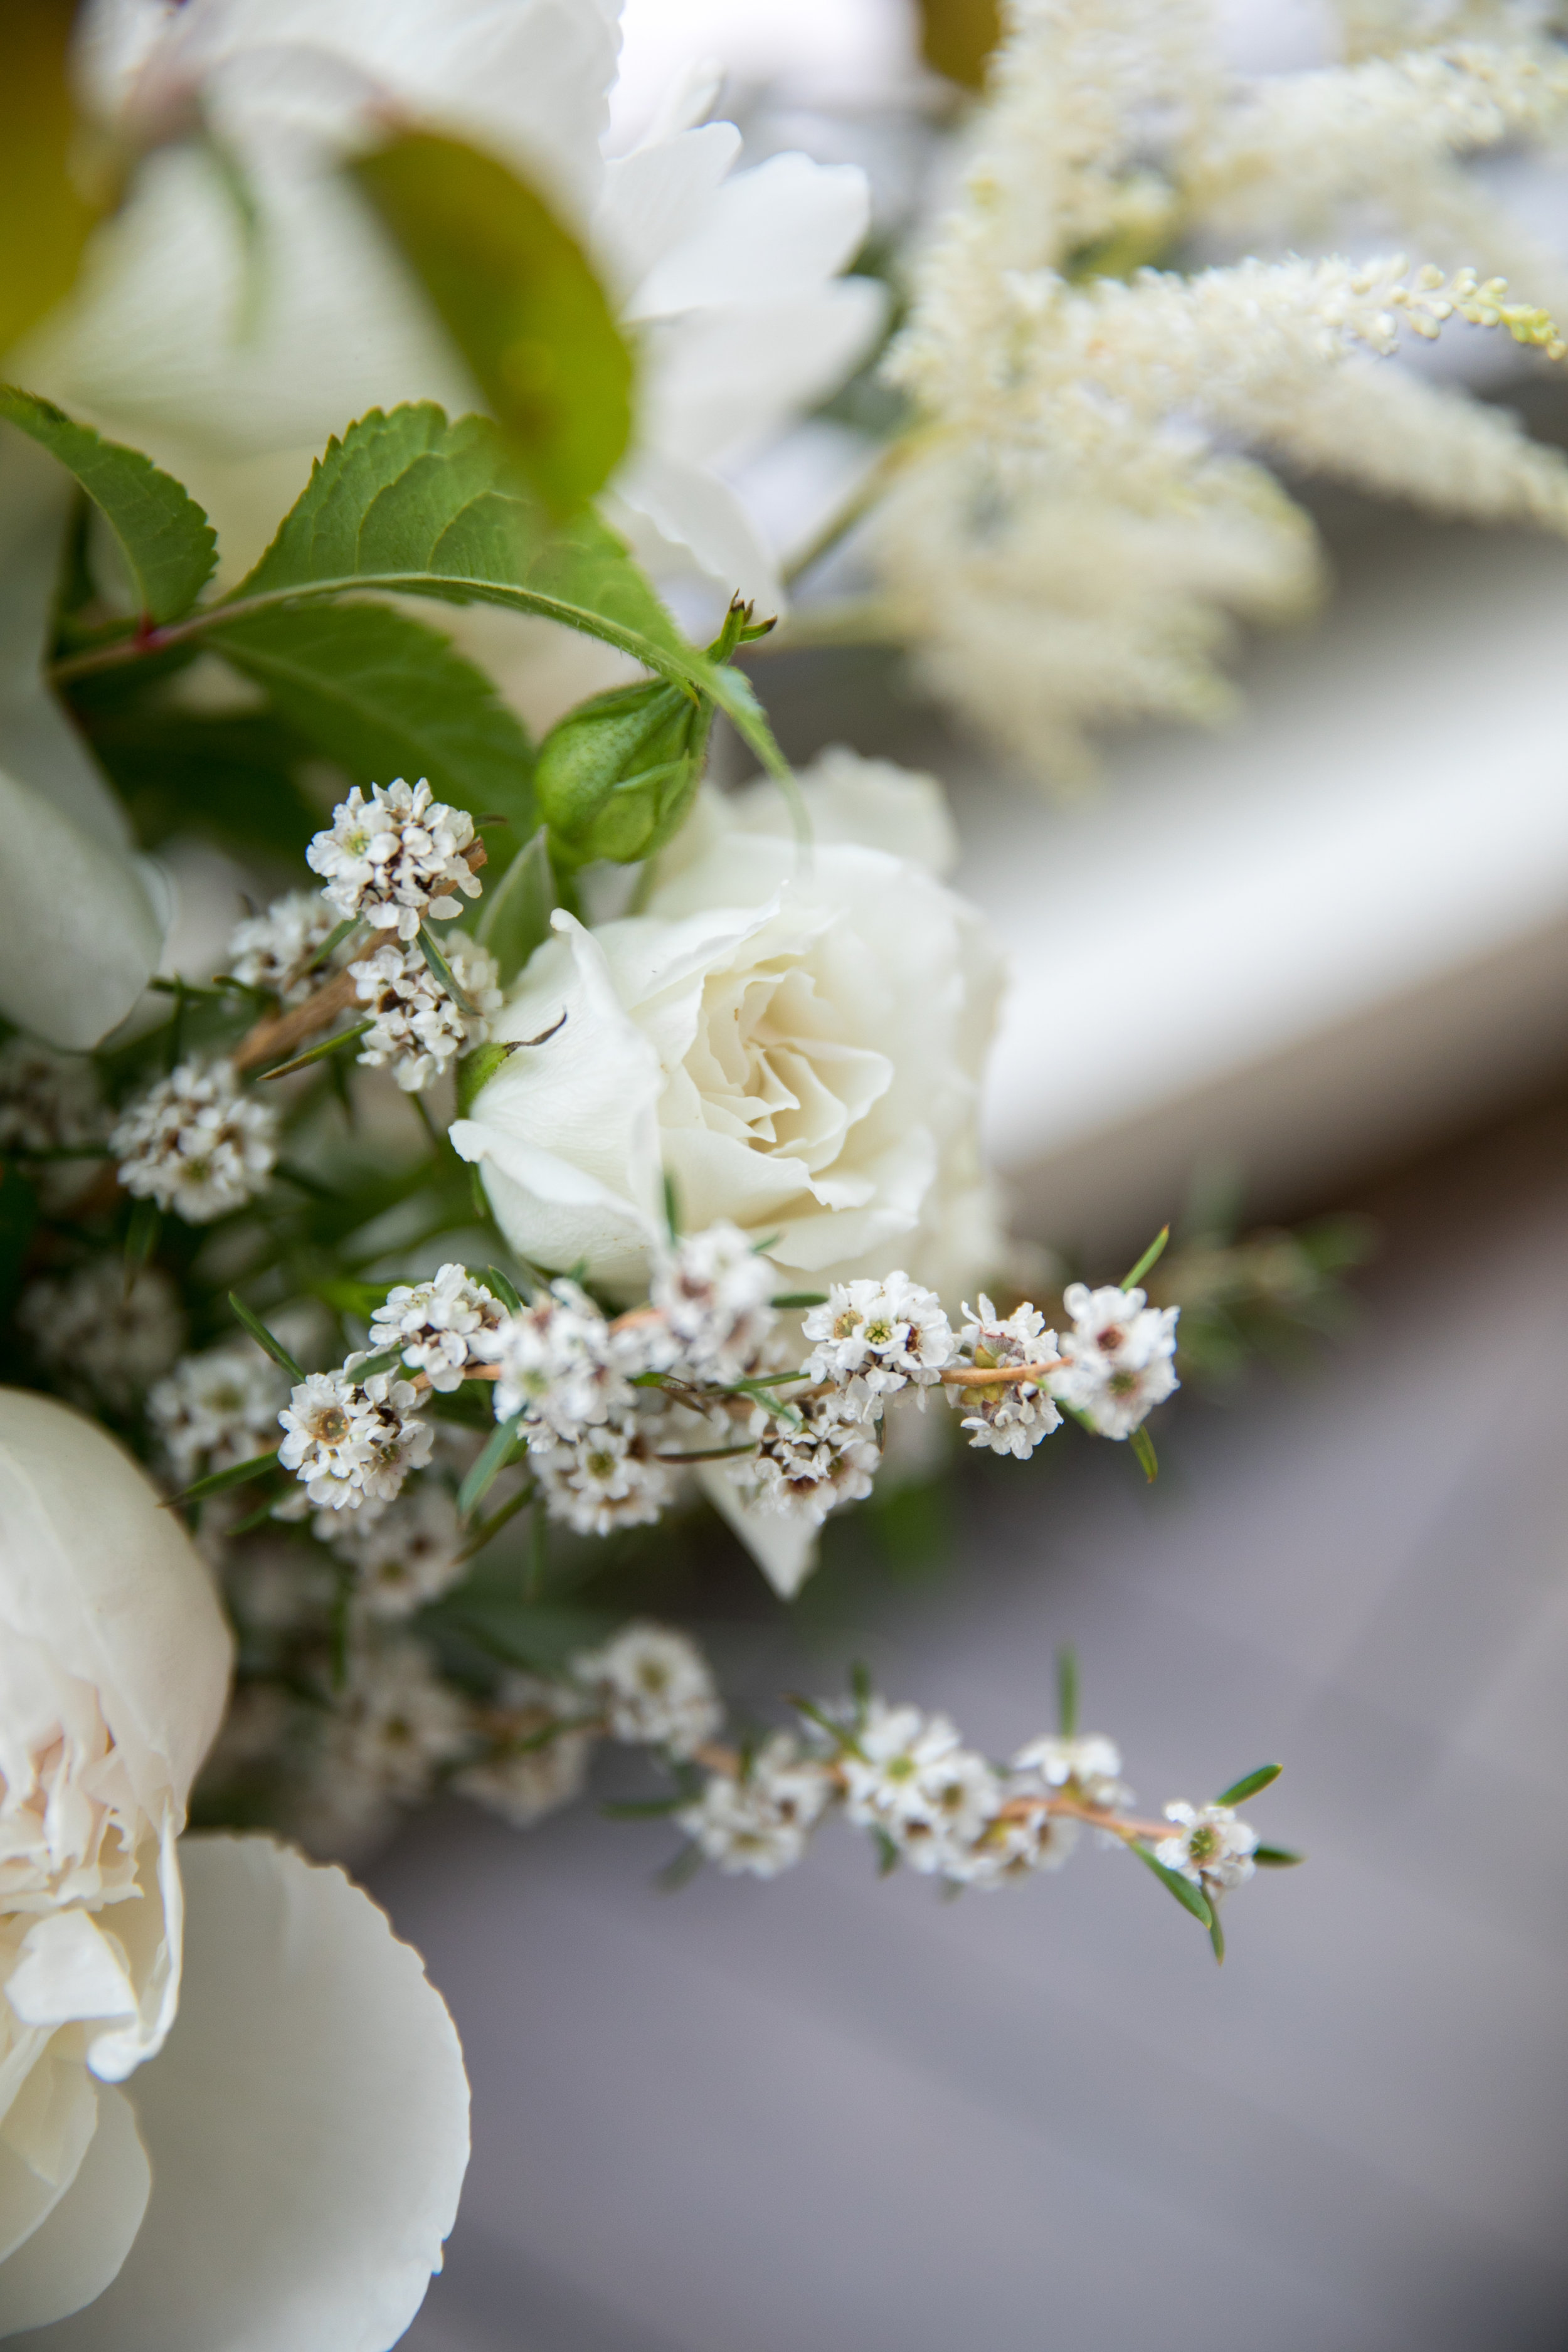 Midwest wedding photographer - Flowers 2